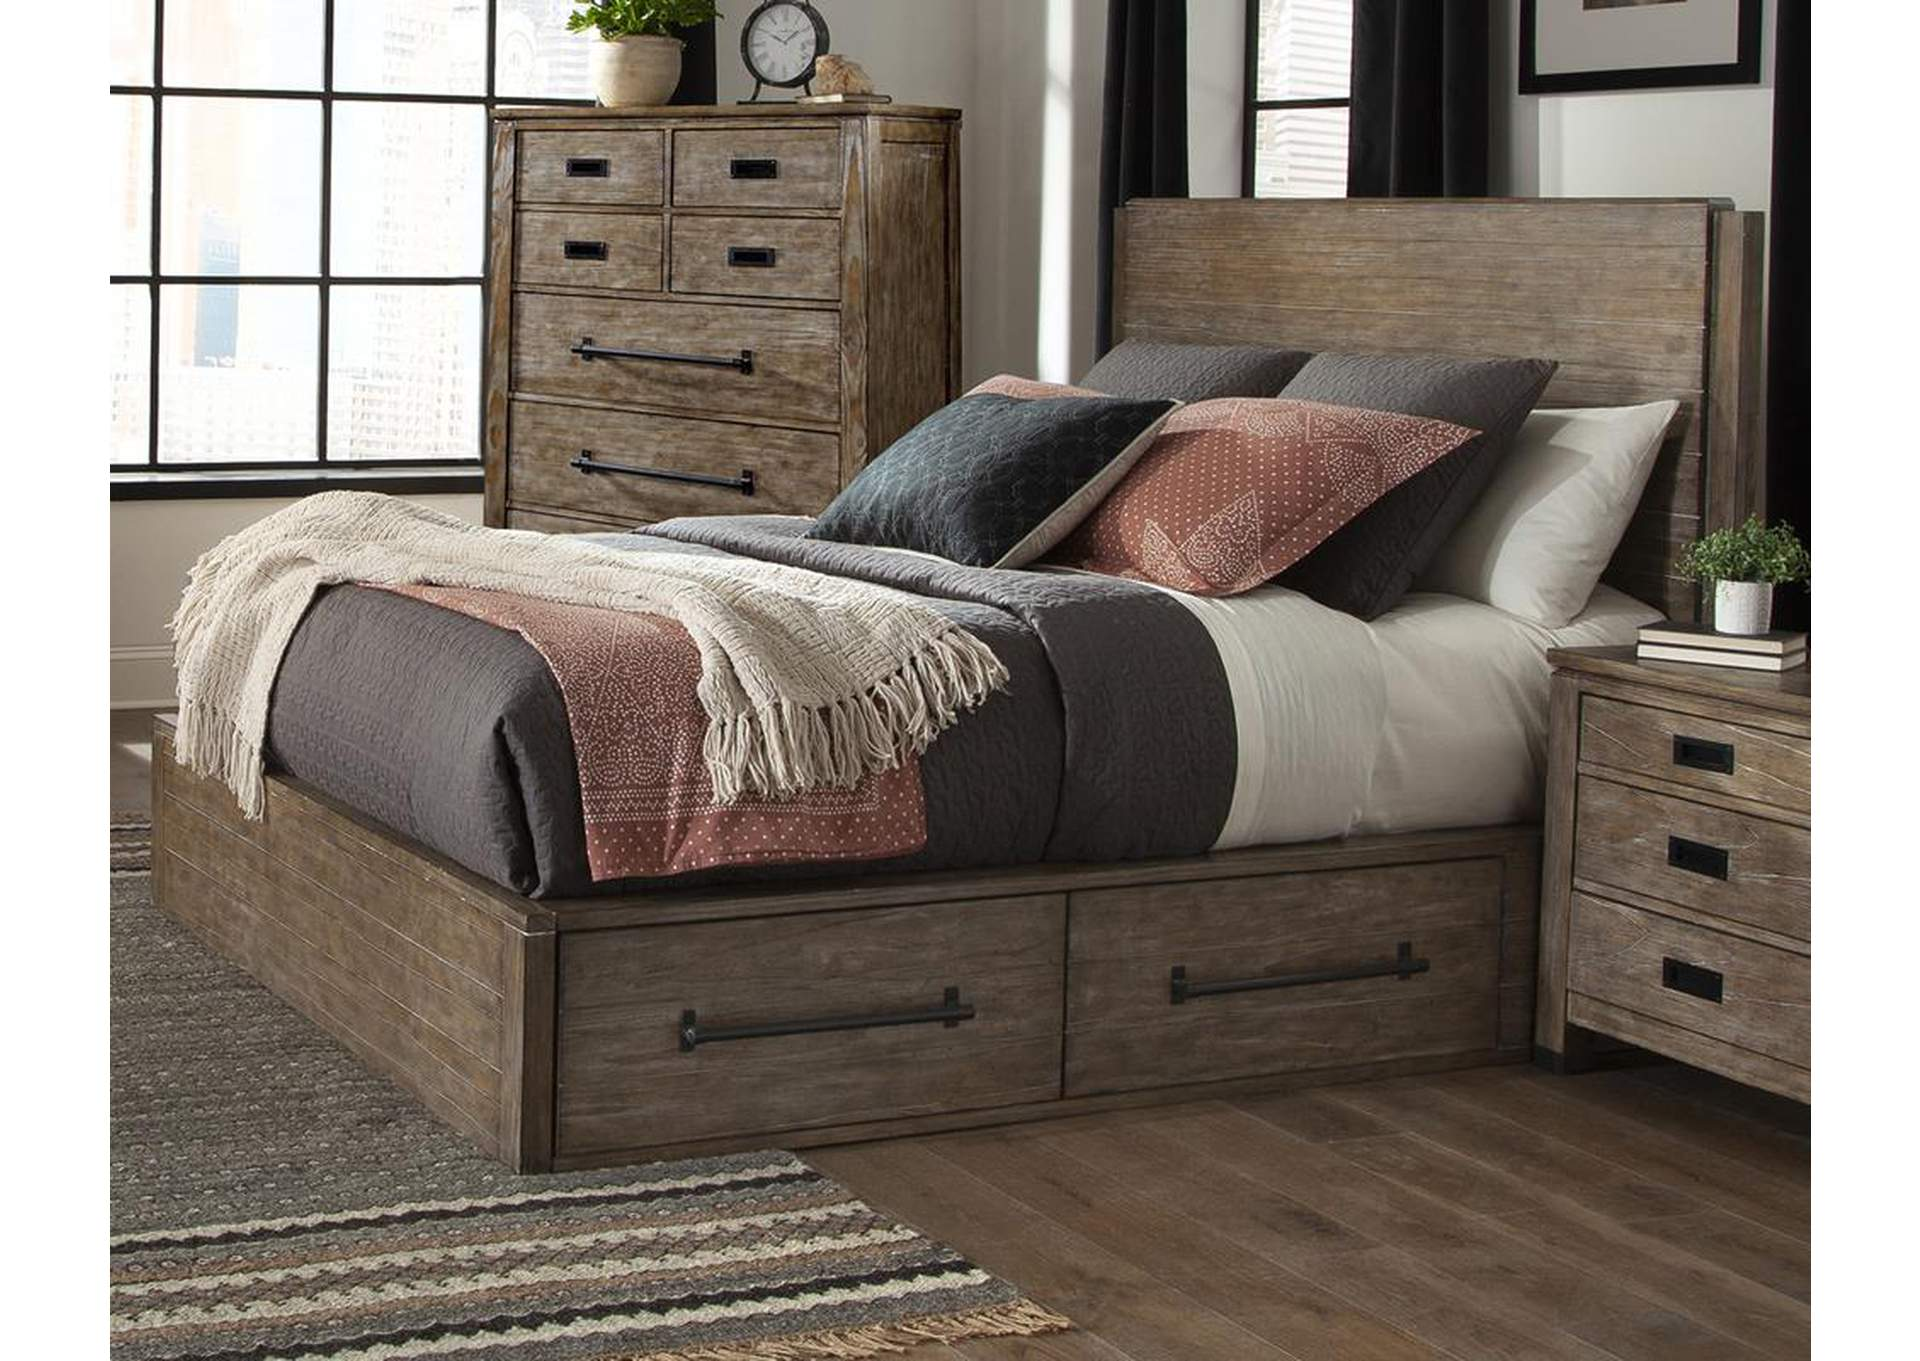 Meester Rustic Barn Door Eastern King Bed,Coaster Furniture